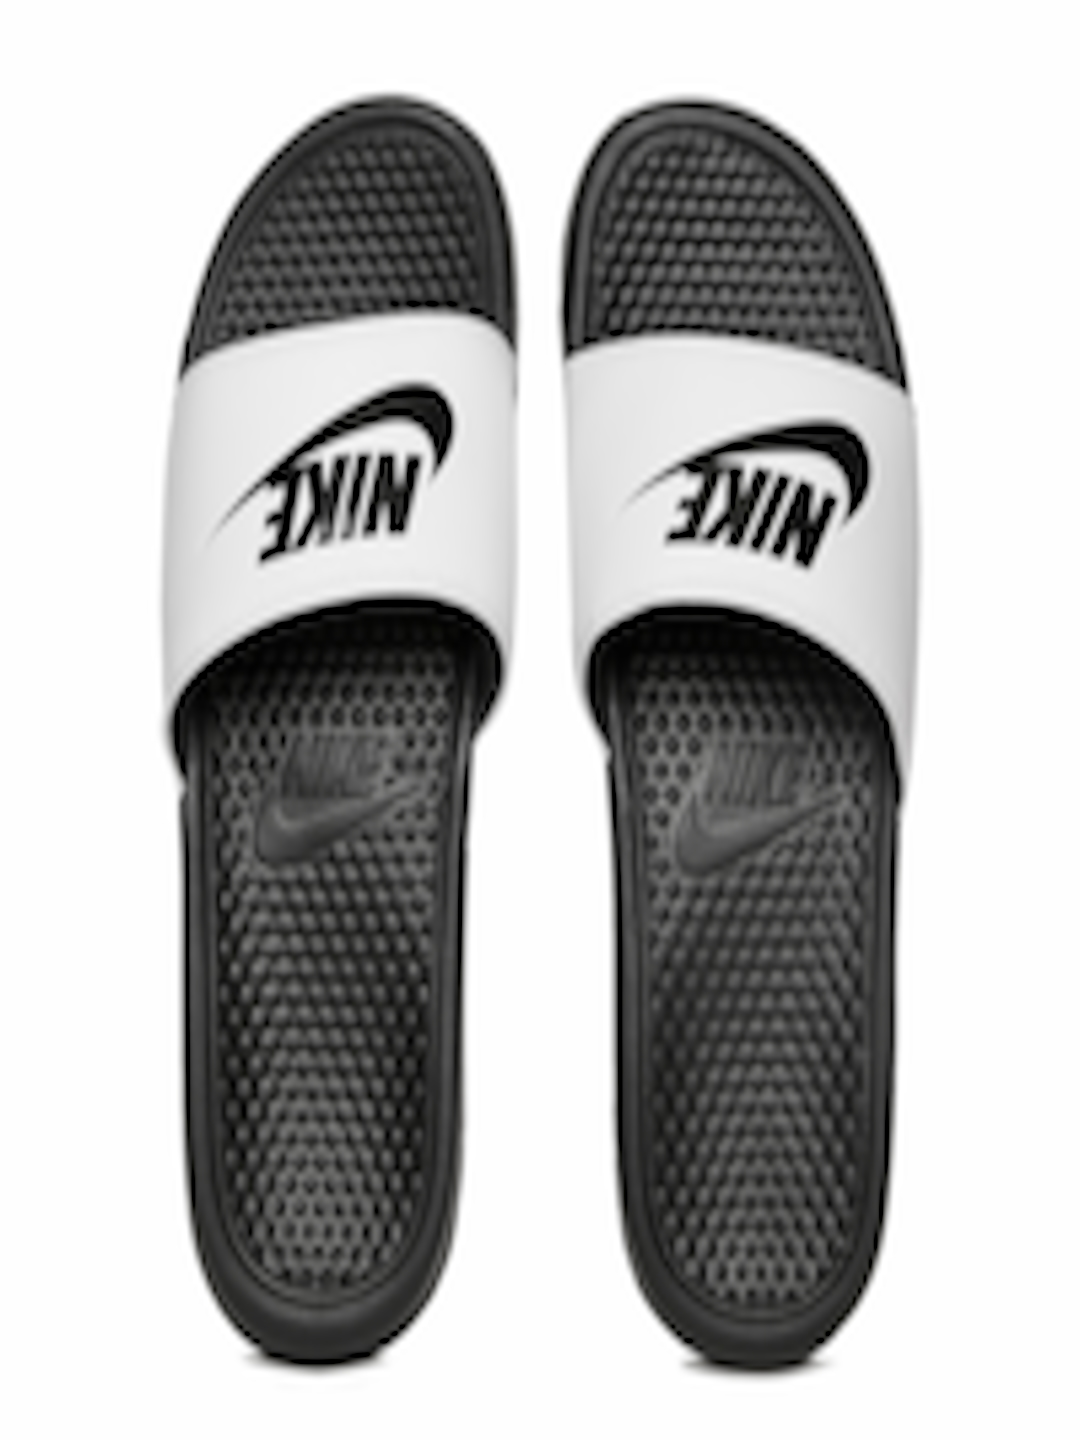 b9f052a2794 Buy Nike Men White   Black BENASSI JDI Printed Flip Flops - Flip ...